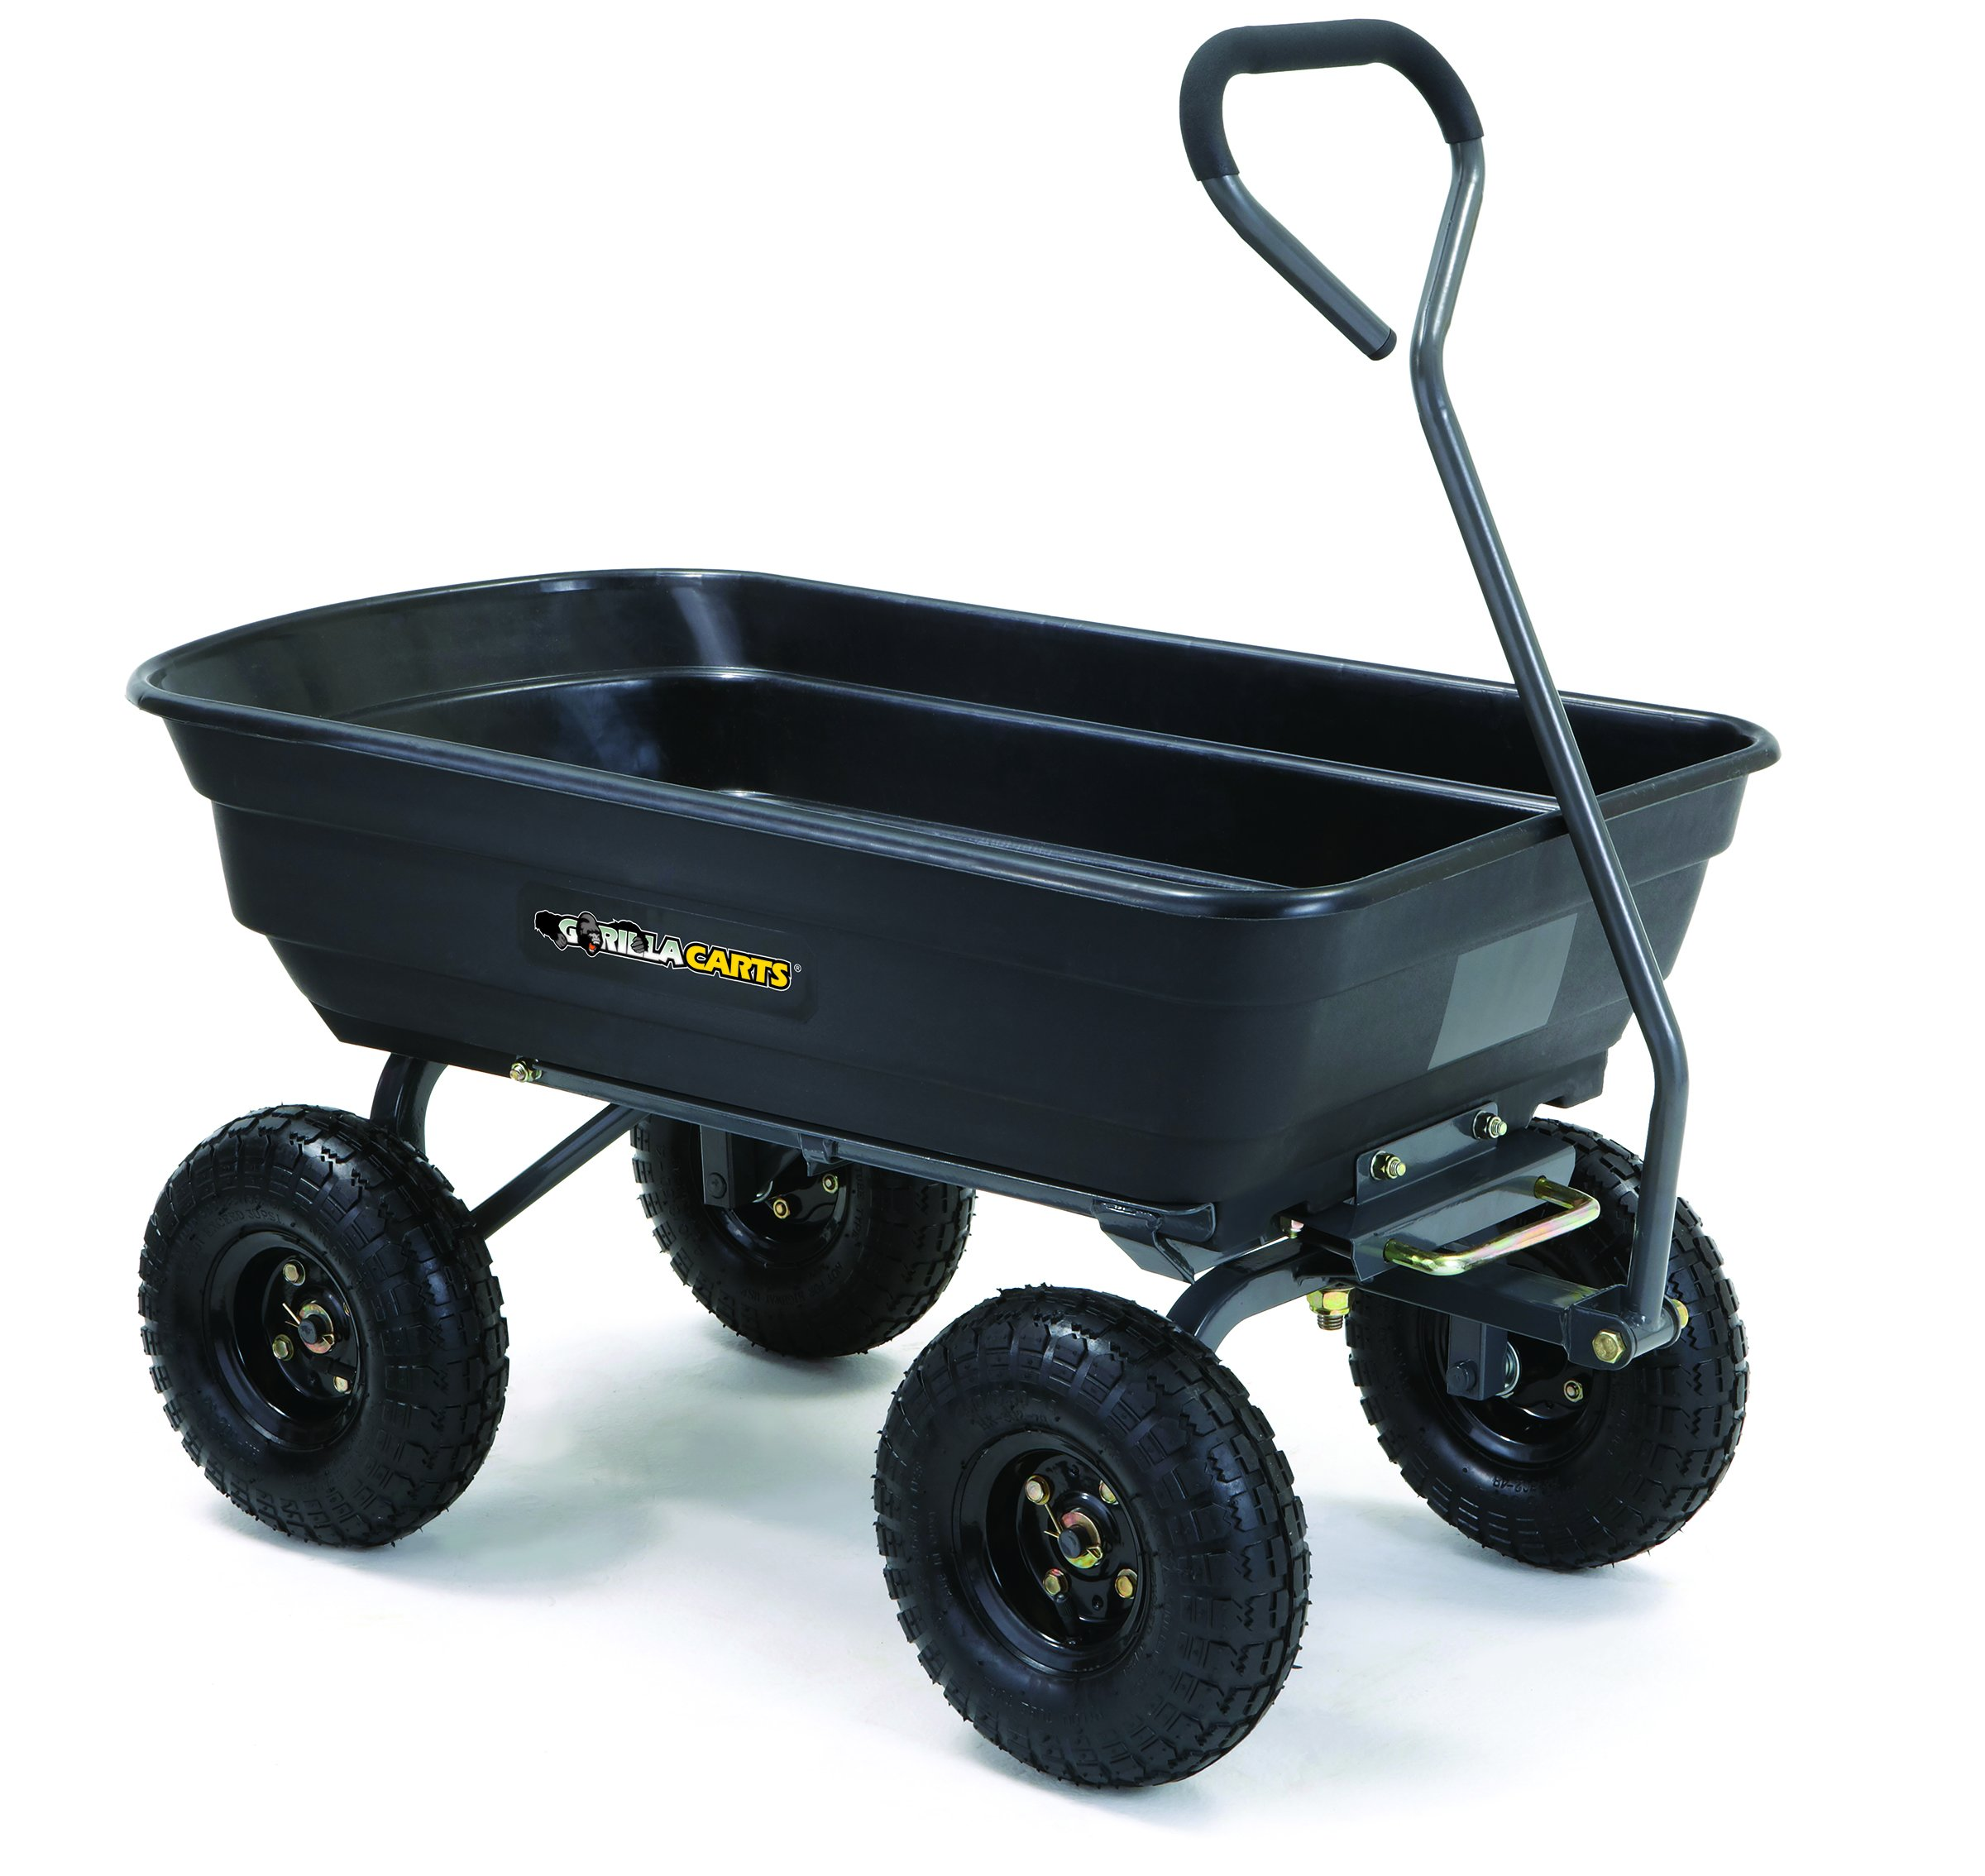 "Gorilla Carts Poly Garden Dump Cart with Steel Frame and 10"" Pneumatic Tires with a Capacity of 600 lb, Black product image"